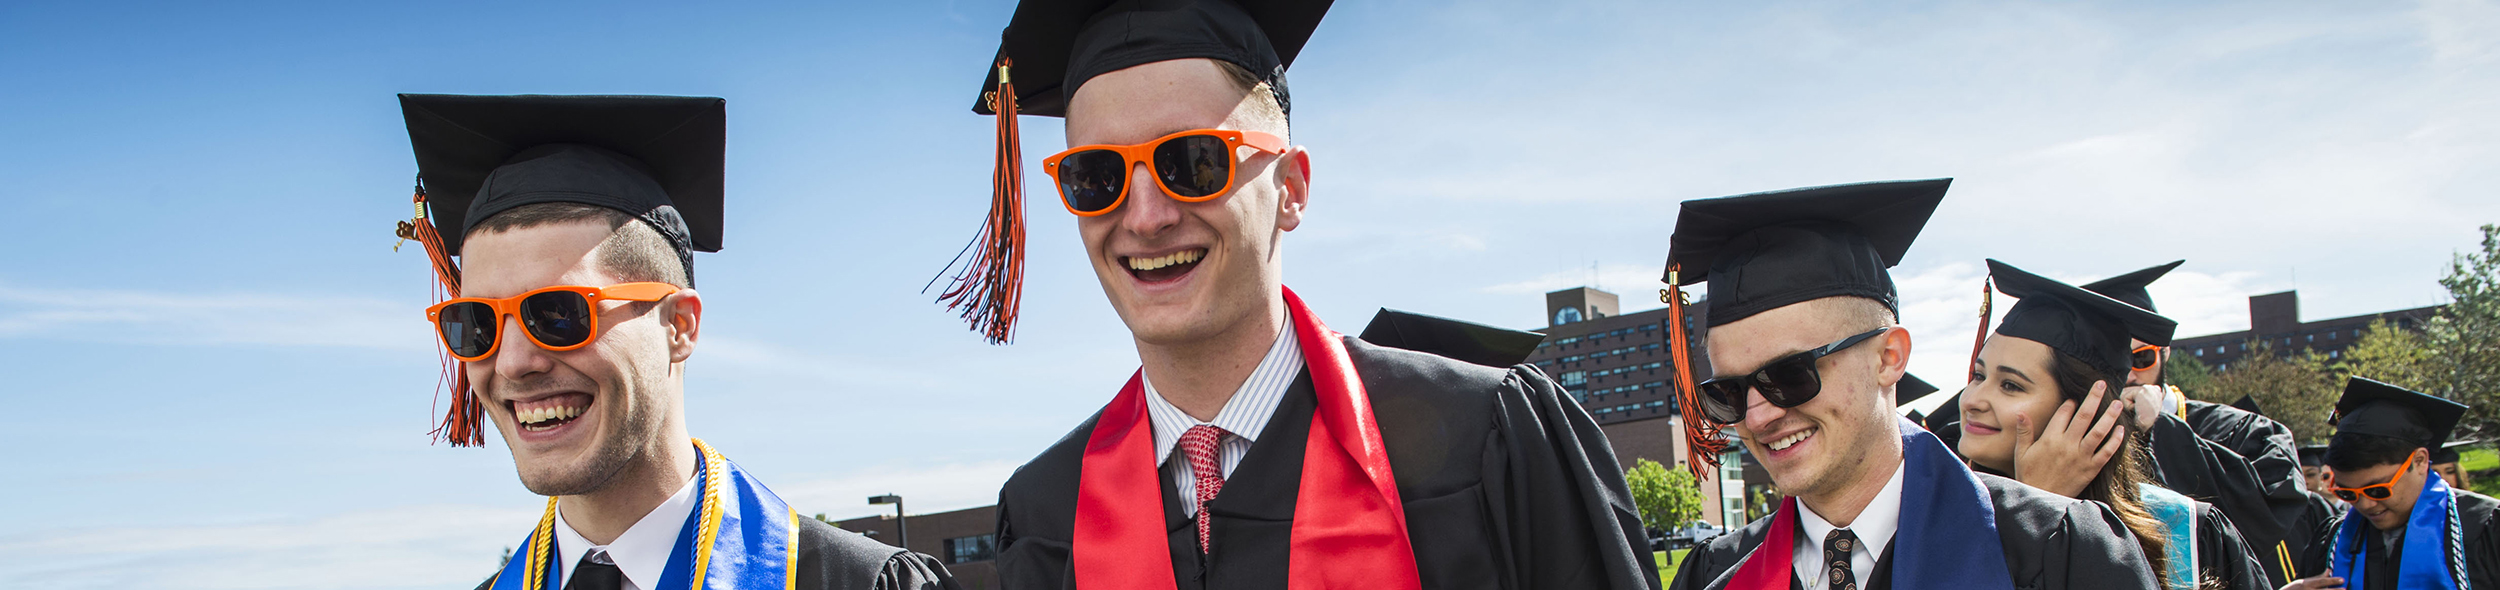 Students dressed in graduation attire and sunglasses